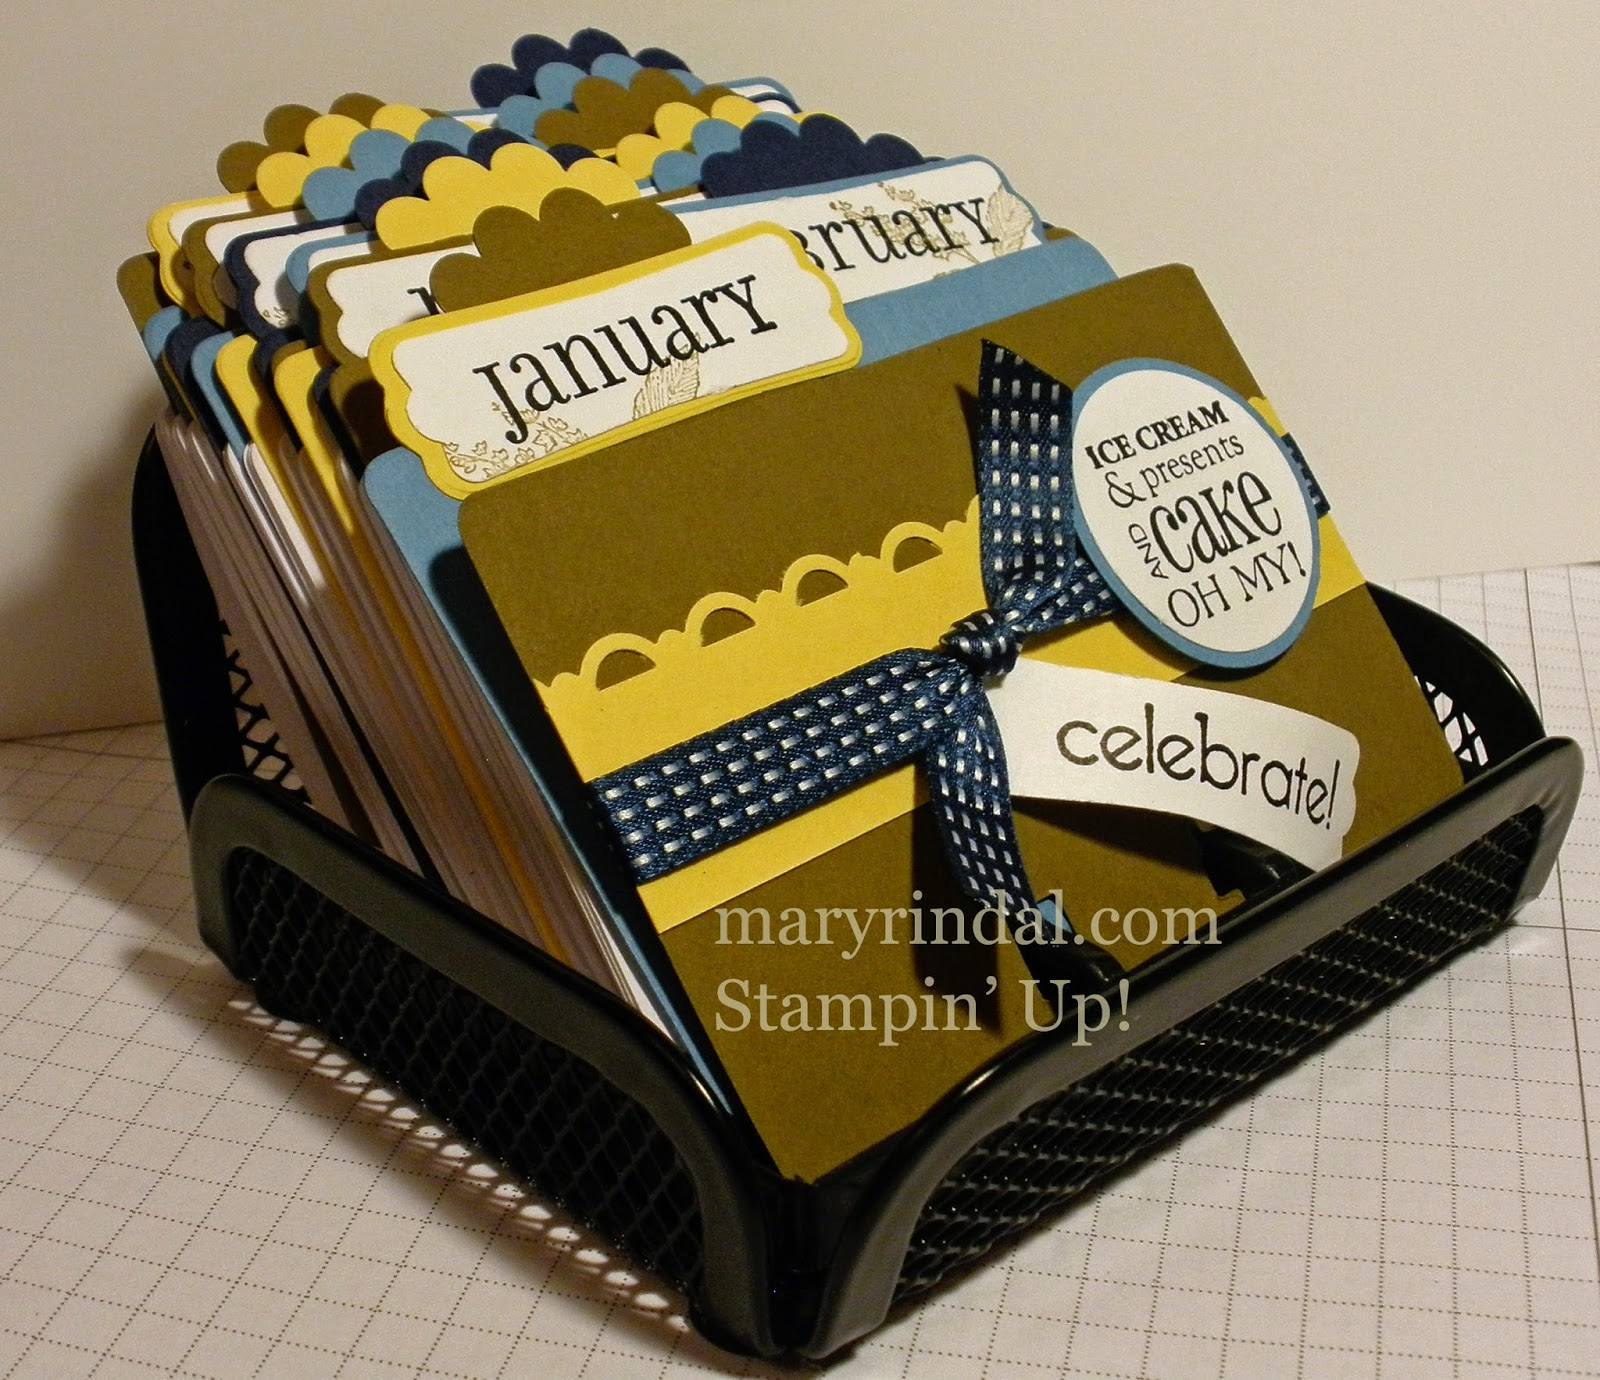 rolodex, birthday calendar